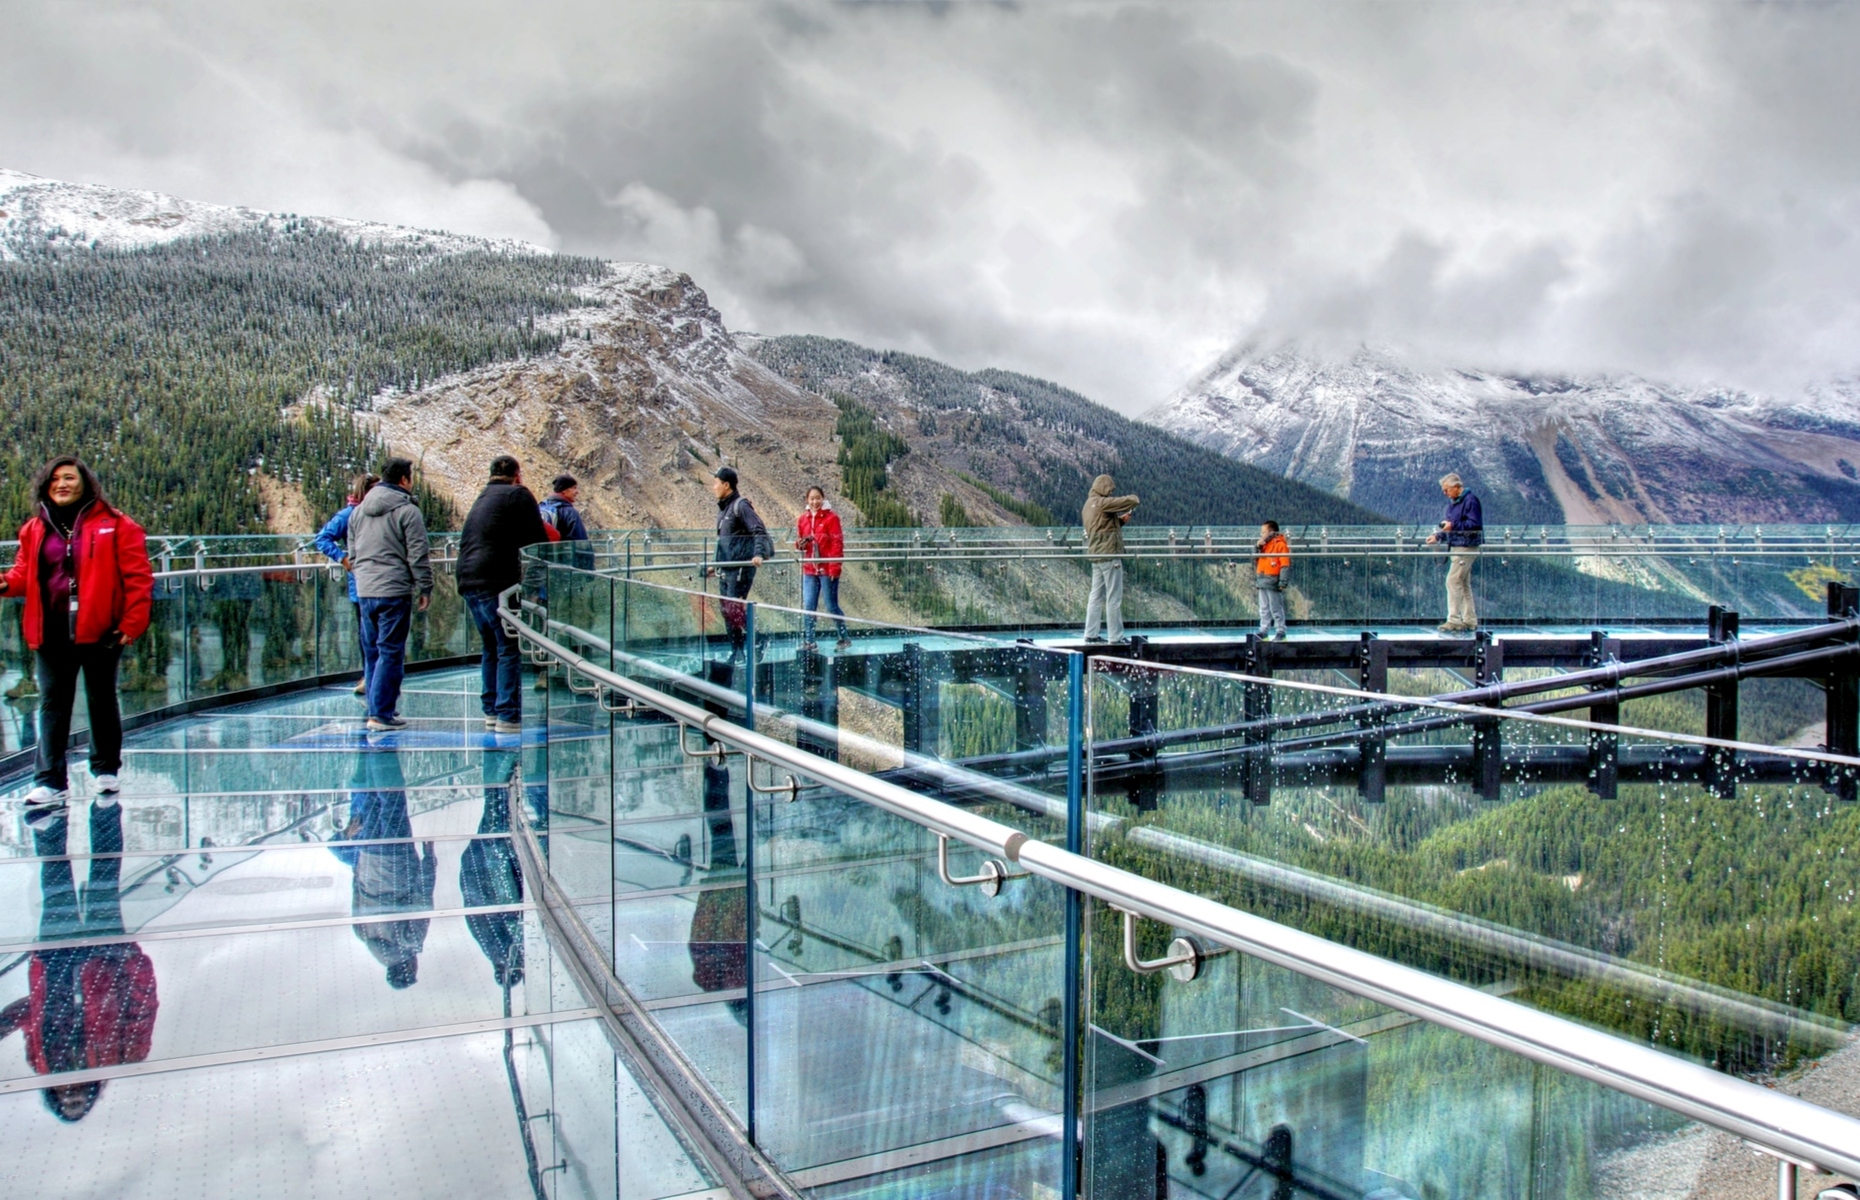 Slide 11 of 16: Cliffwalk is series of walkways that look out over the Capilano River in British Columbia. Their highest point measures 90 metres (295 feet) above the river. Those brave enough can venture onto two glass platforms that offer views of the canyon below.